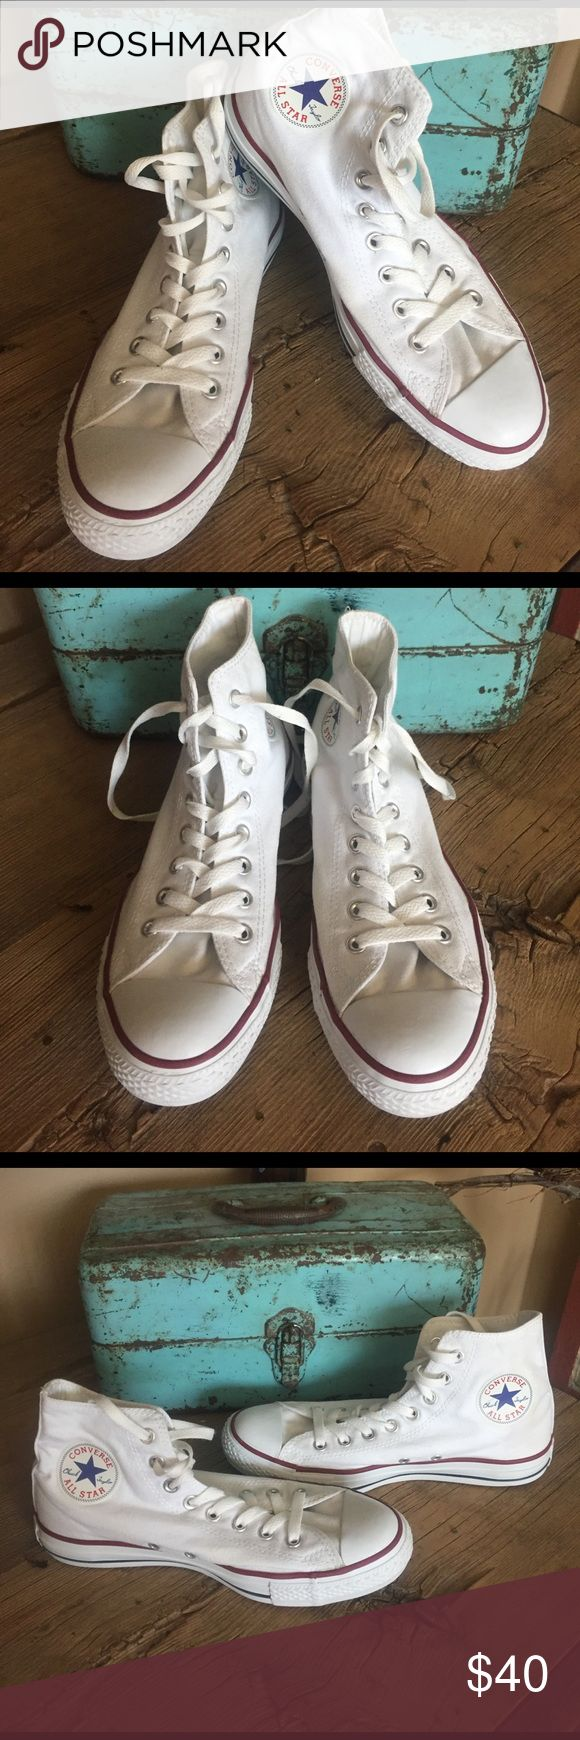 Converse White High Tops Women's Size 10/Men's Size 8. Preowned and worn just a few times they look brand new. Only flaw is the All Star on backs of heels faded if that doesn't bother you. Converse Shoes Sneakers